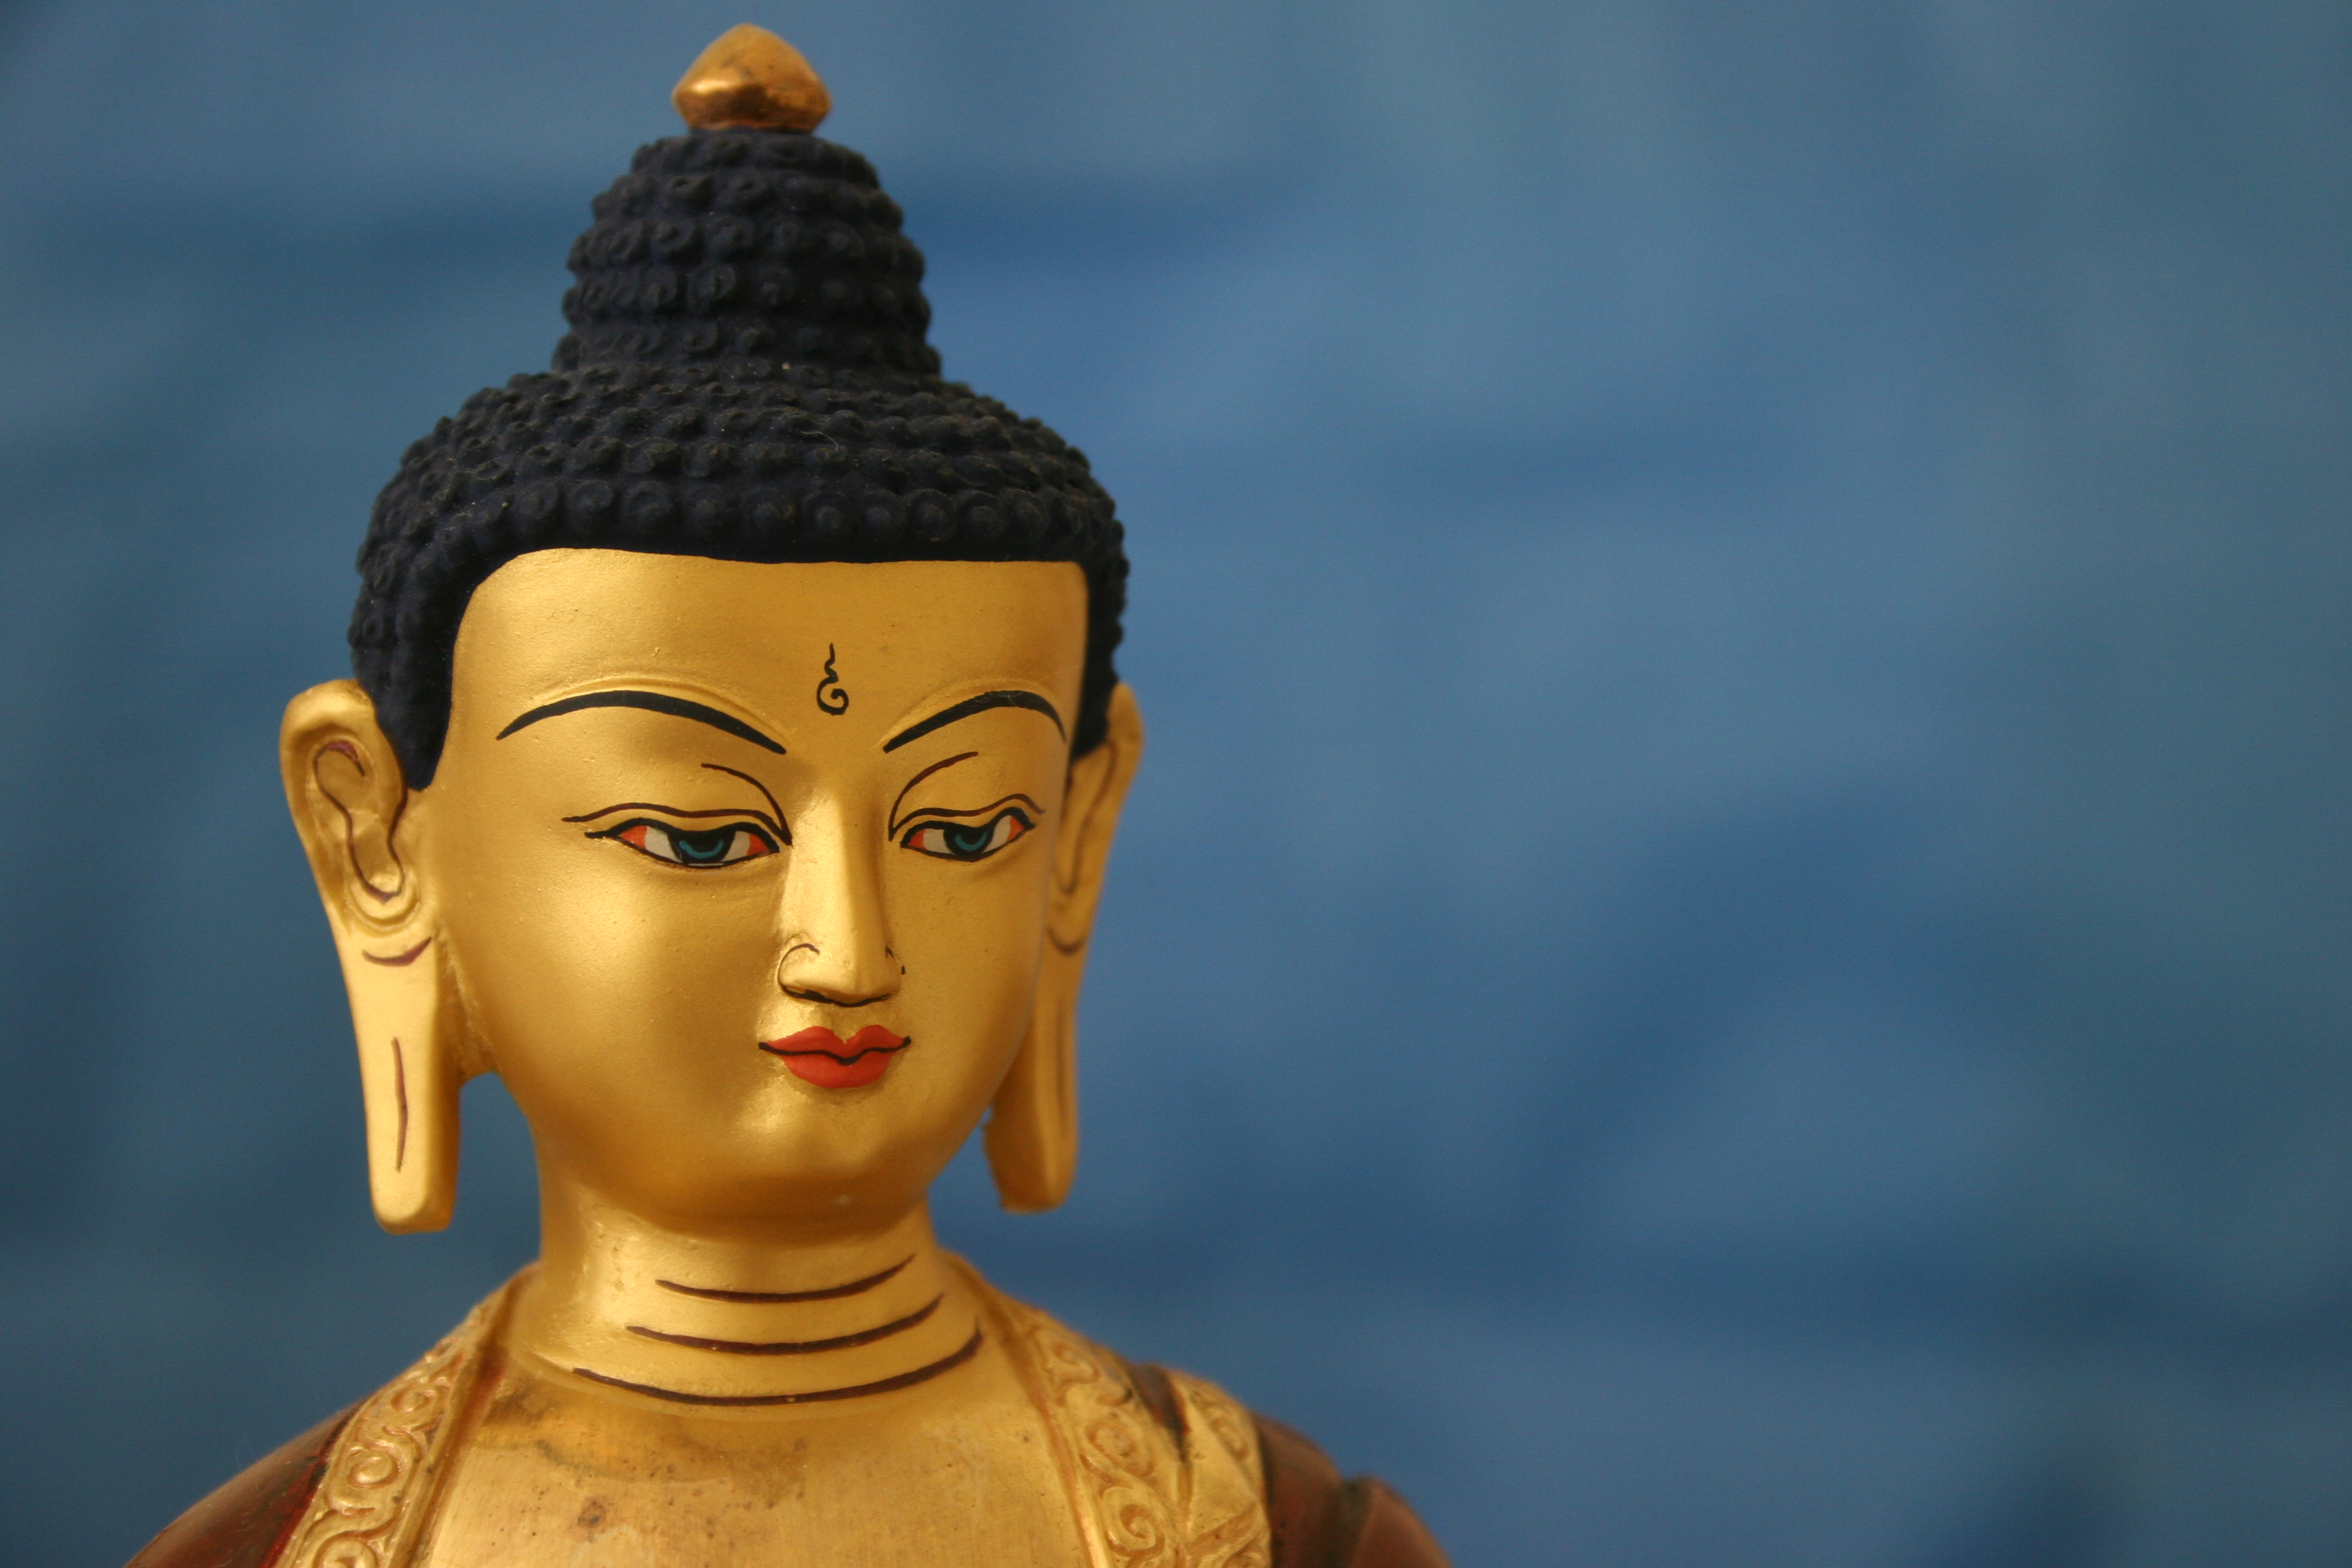 Essential principles of the Buddhist way of life and methods to infuse great meaning into our daily existence